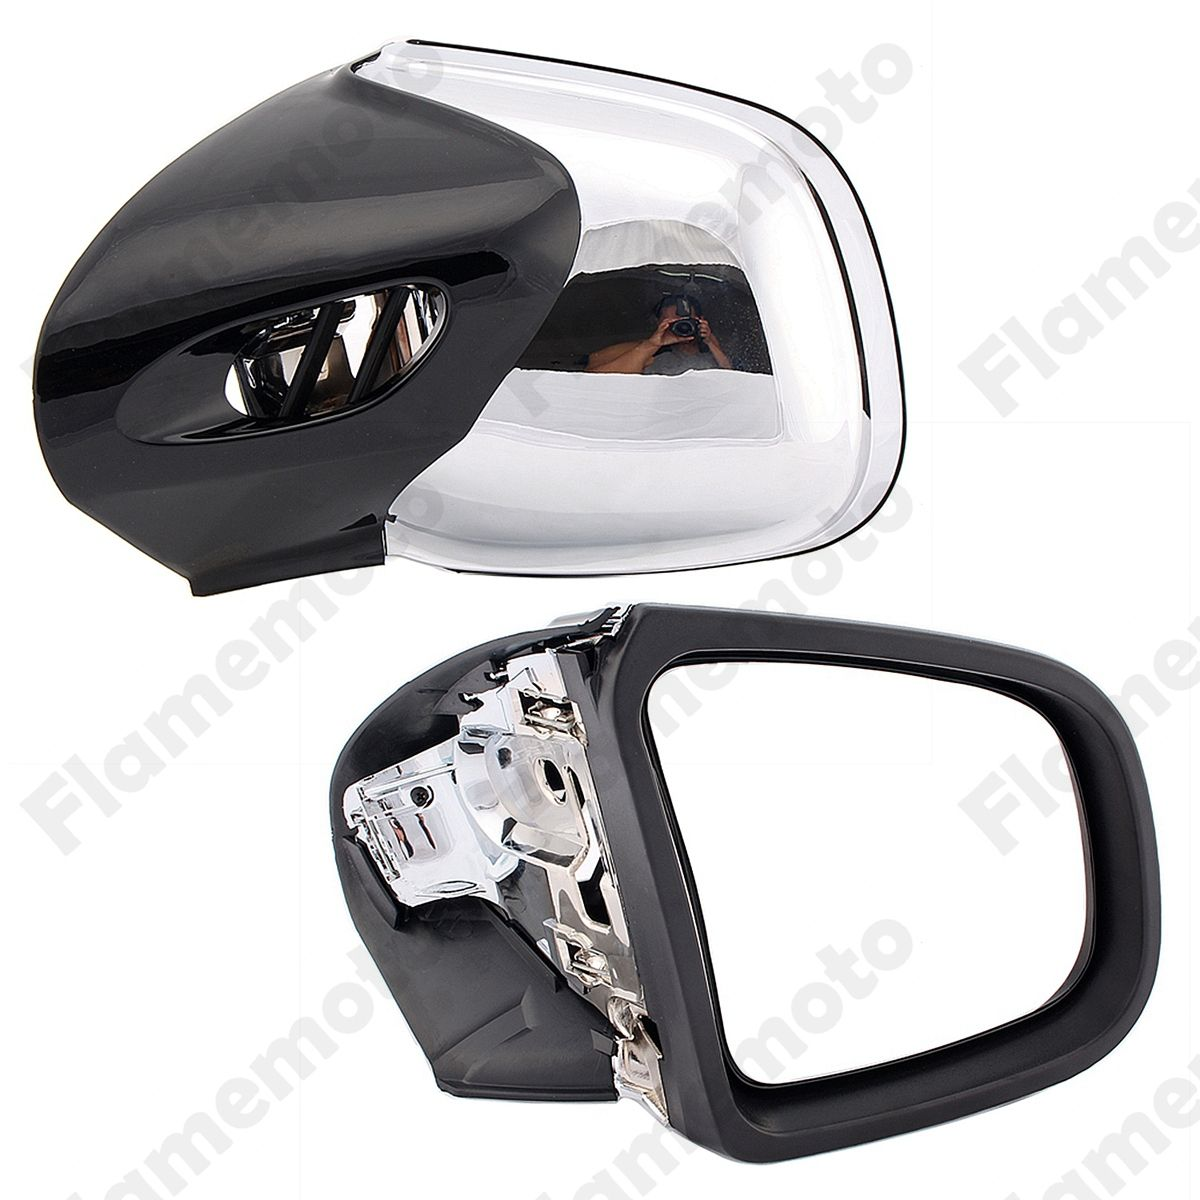 Motorcycle Bike Parts Rearview Side Mirrors Left & Right For BMW K1200 LT 1999 2000-2004 2005 2006 2007 2008 UNDEFINED Chrome